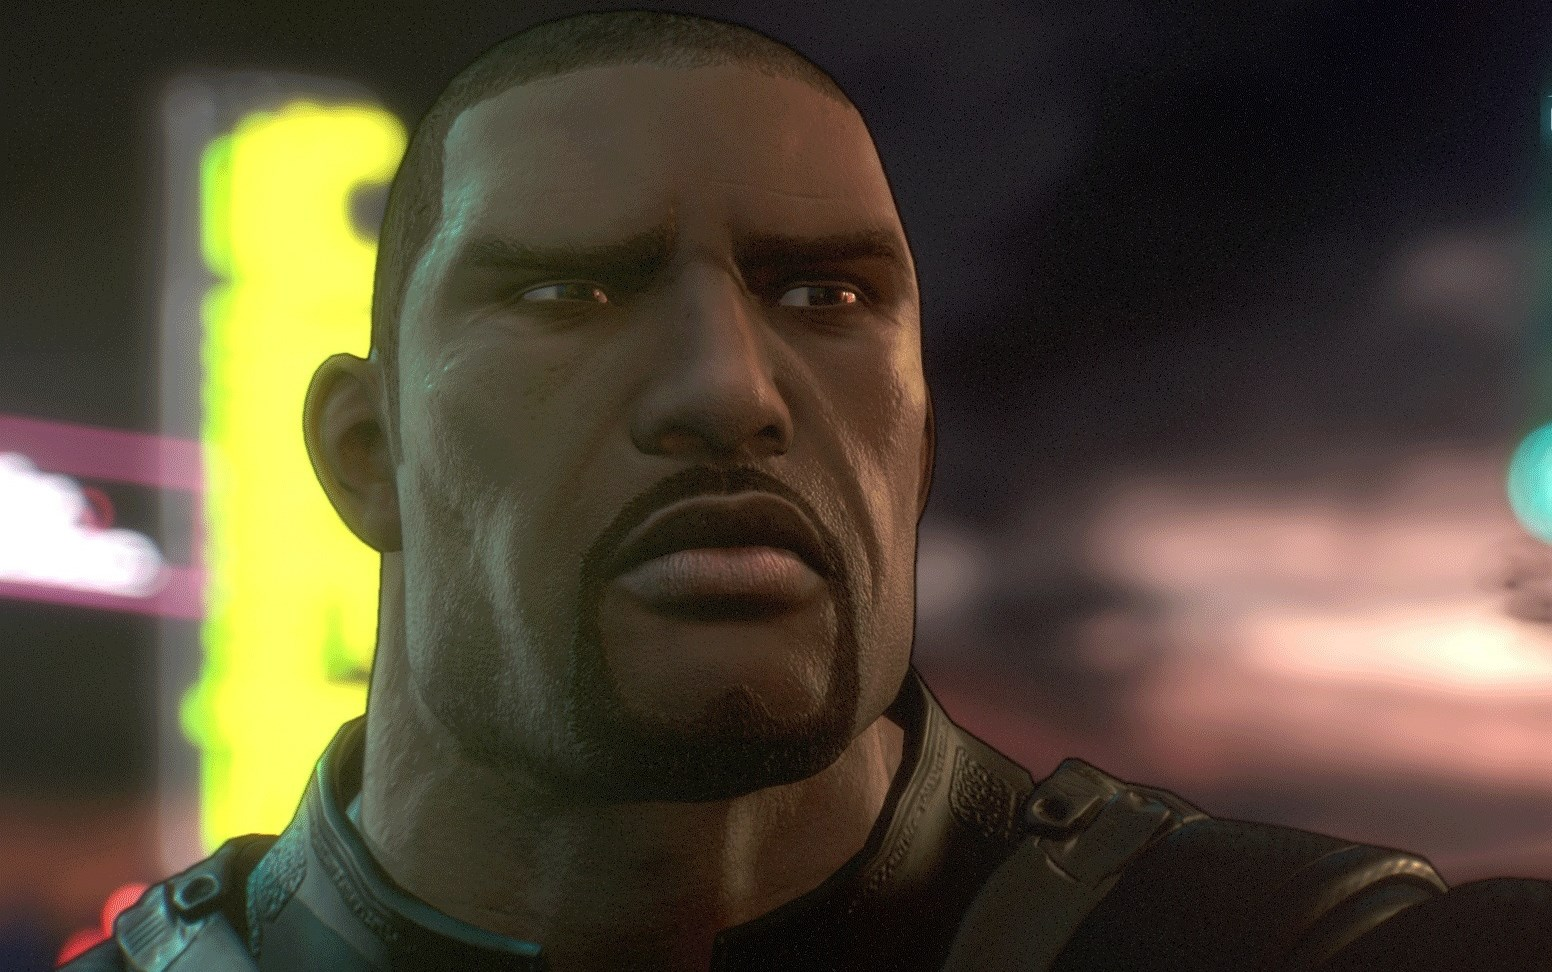 Crackdown 3 is coming to PC, but not until 2017